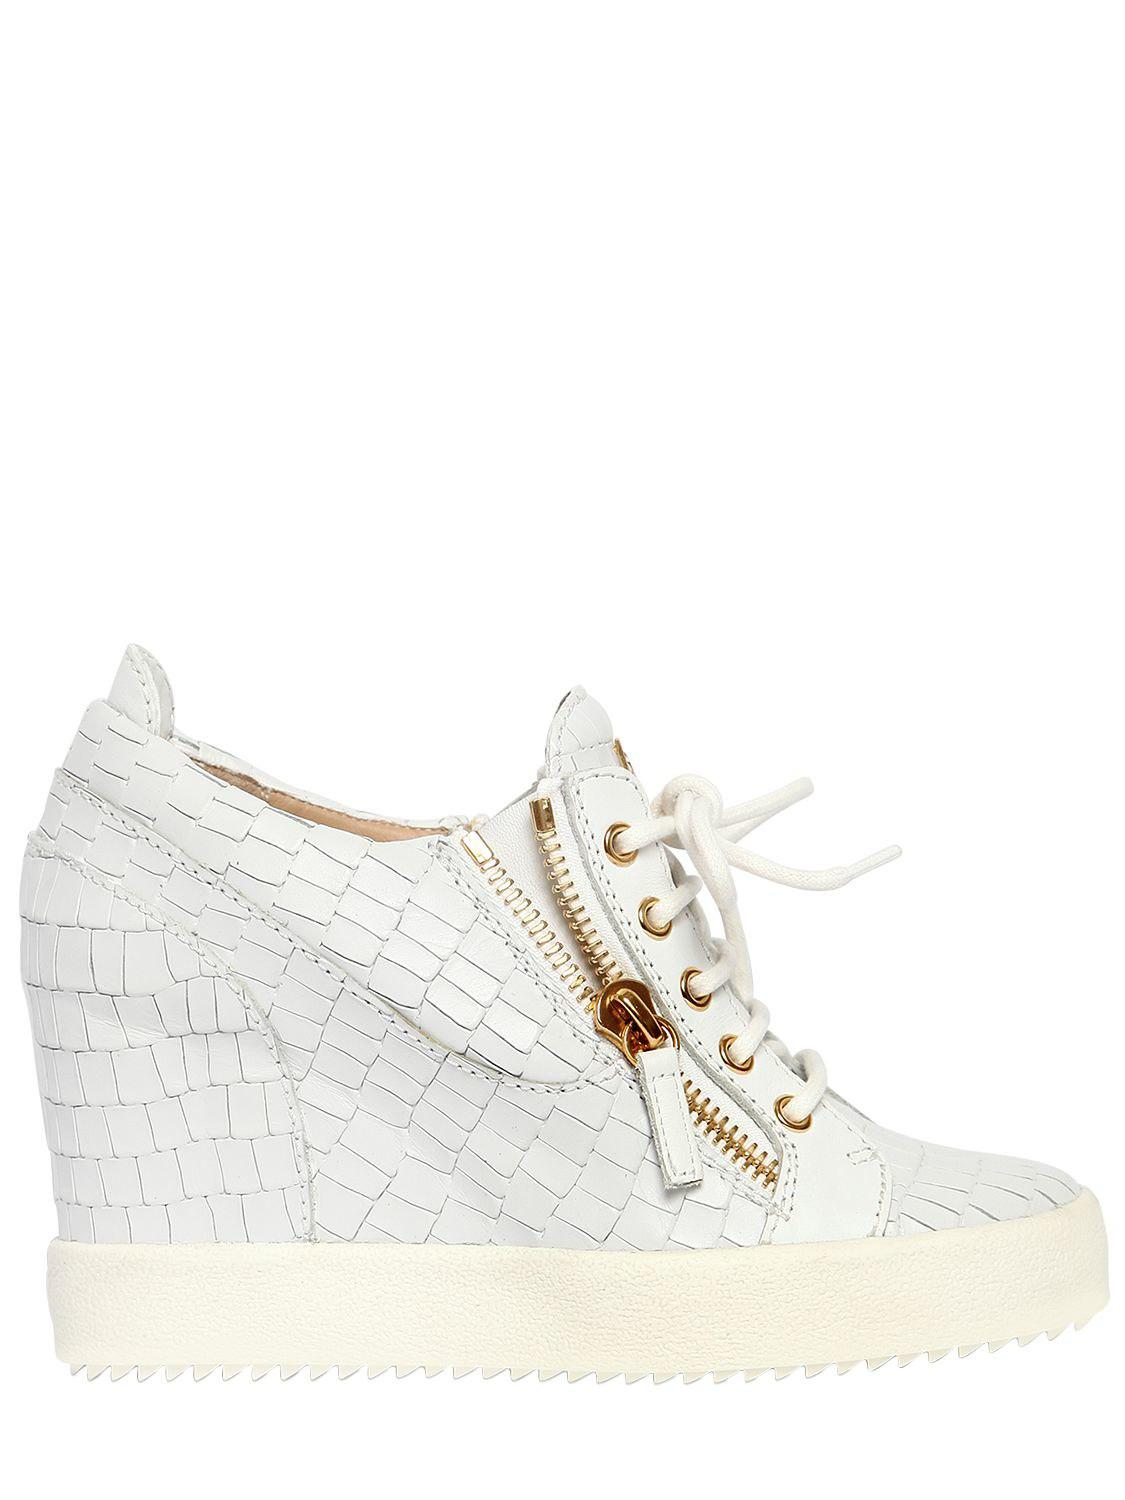 e37aa7f194d7 Giuseppe Zanotti 85mm Croc Leather Wedged Sneakers in White - Lyst